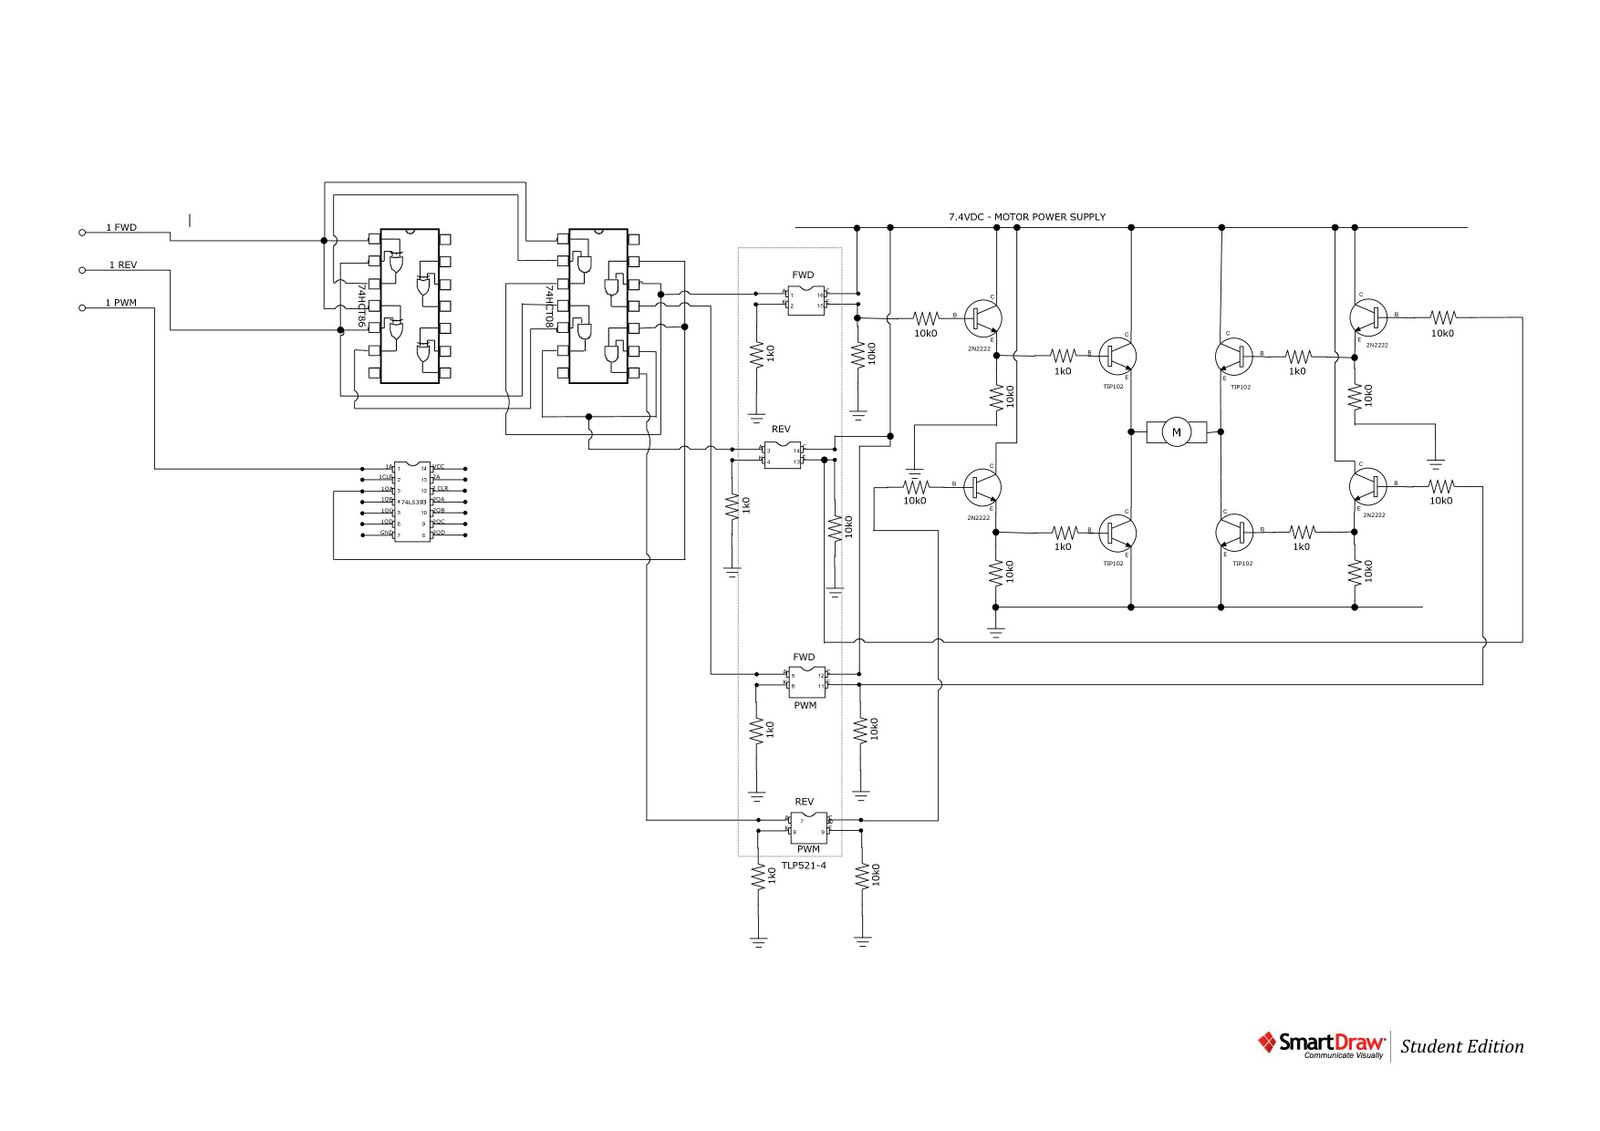 hight resolution of usb drive wiring diagram diagram data schema usb flash drive wiring diagram usb drive wiring diagram